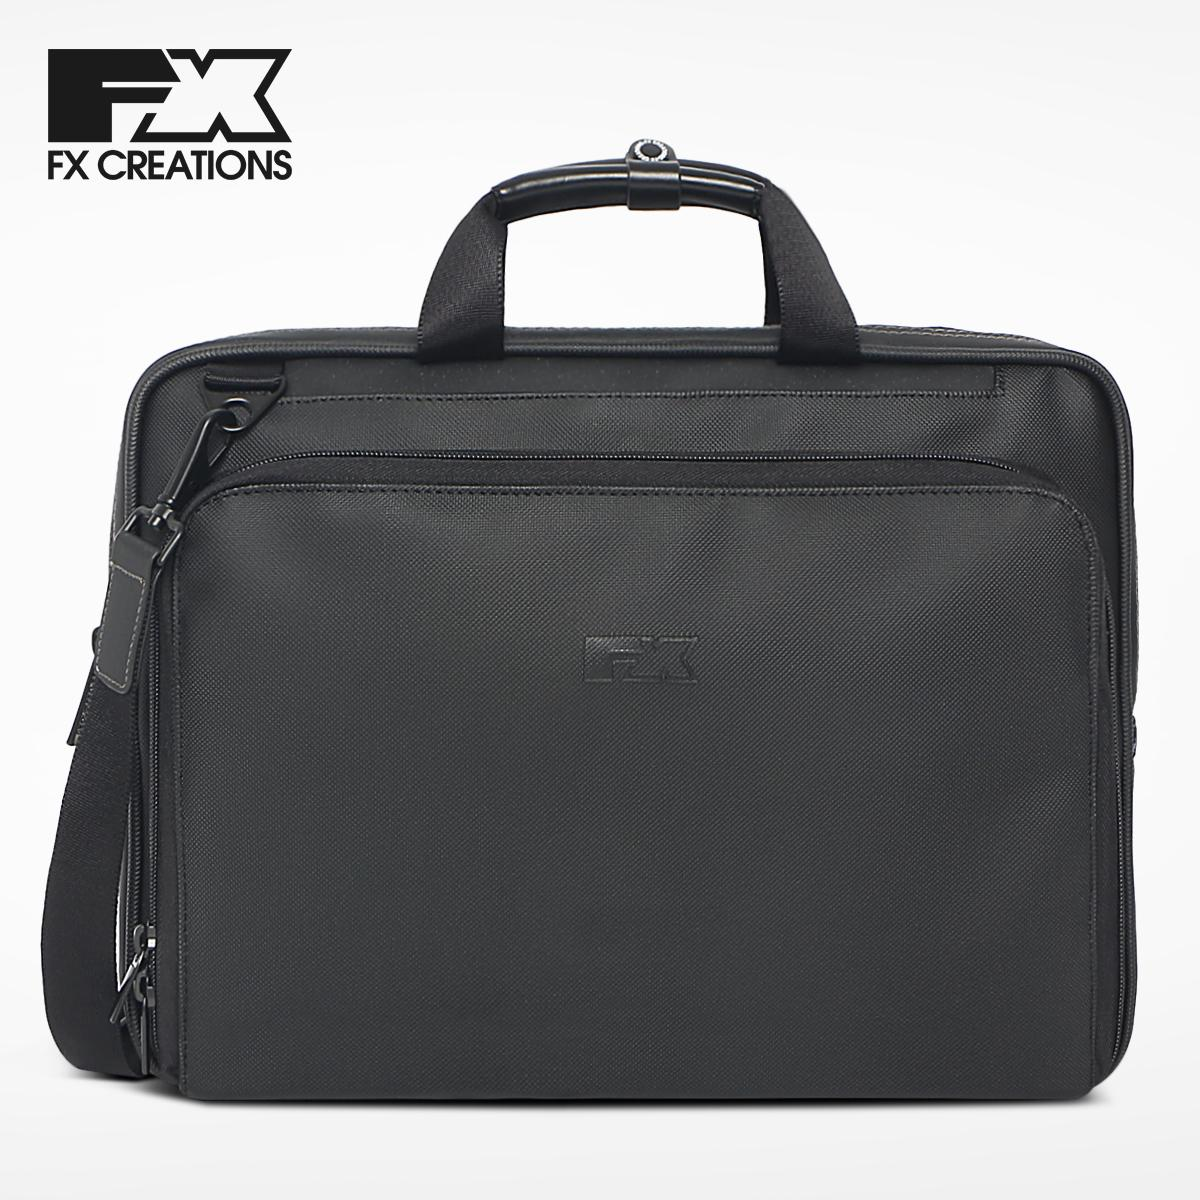 Hong Kong FX Creations Phil Poem Waterproof PVC Office Workers Business Handbag Briefcase SH990386